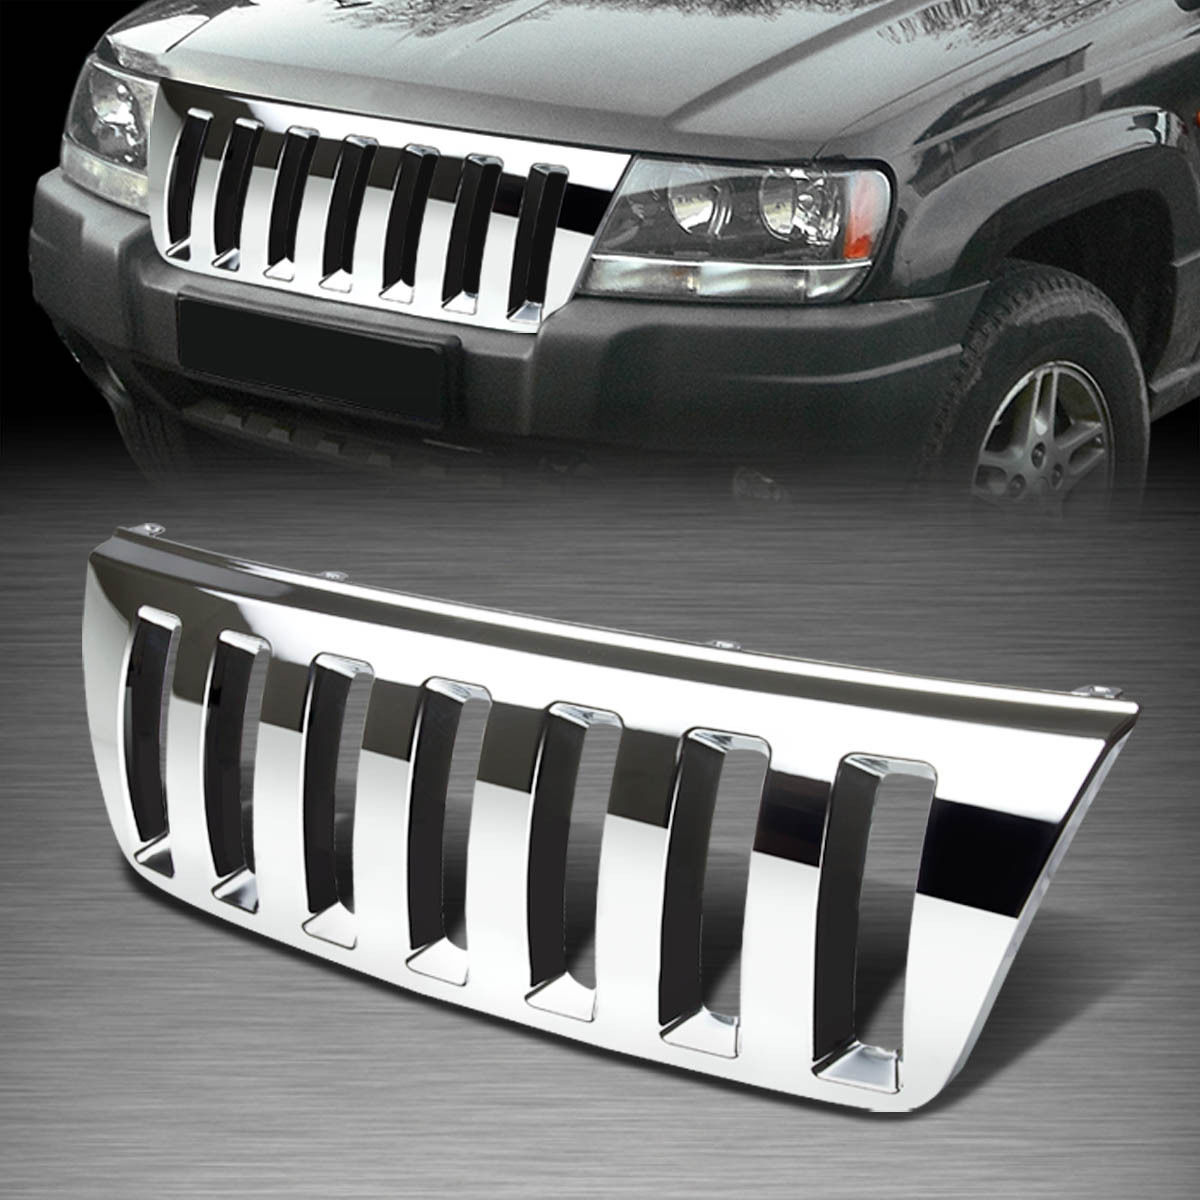 hight resolution of  jeep xj custom grill for 99 04 jeep grand cherokee wj abs plastic chrome